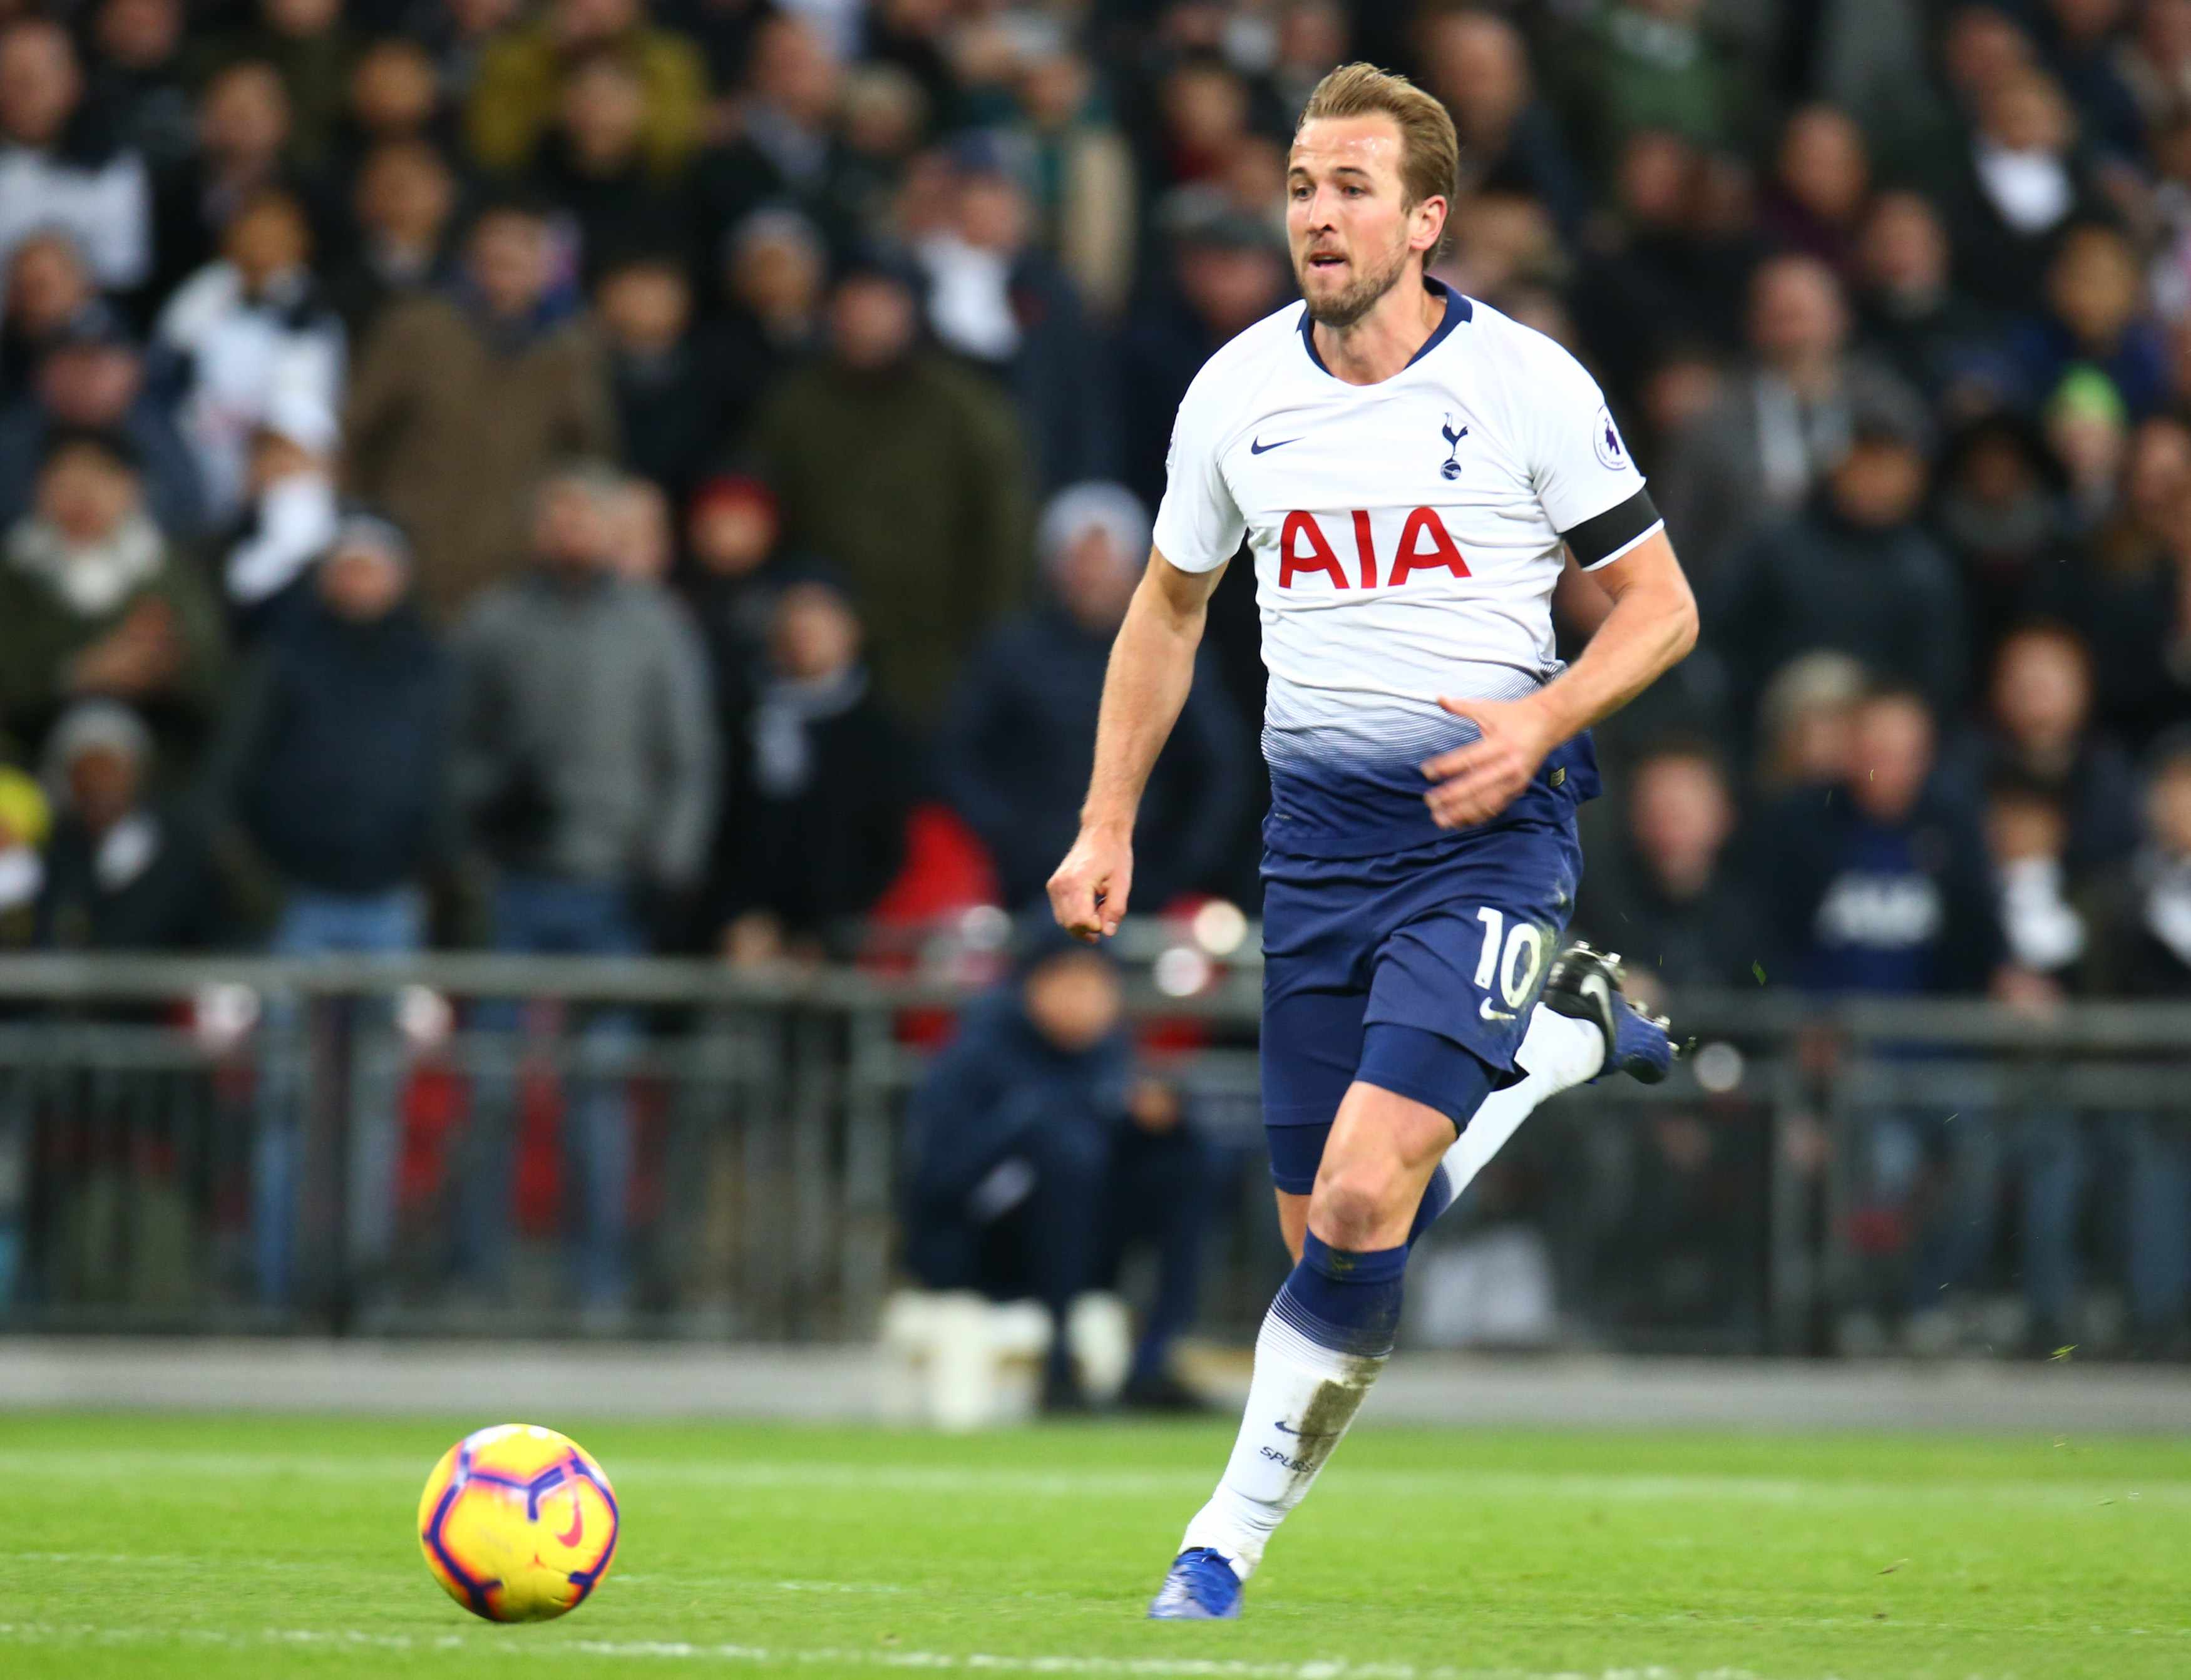 London, England - October 29, 2018 Tottenham Hotspur's Harry Kane during Premier League between Tottenham Hotspur  and Manchester City at Wembley stadium , London, England on 29 Oct 2018.   (Photo by Action Foto Sport/NurPhoto via Getty Images)